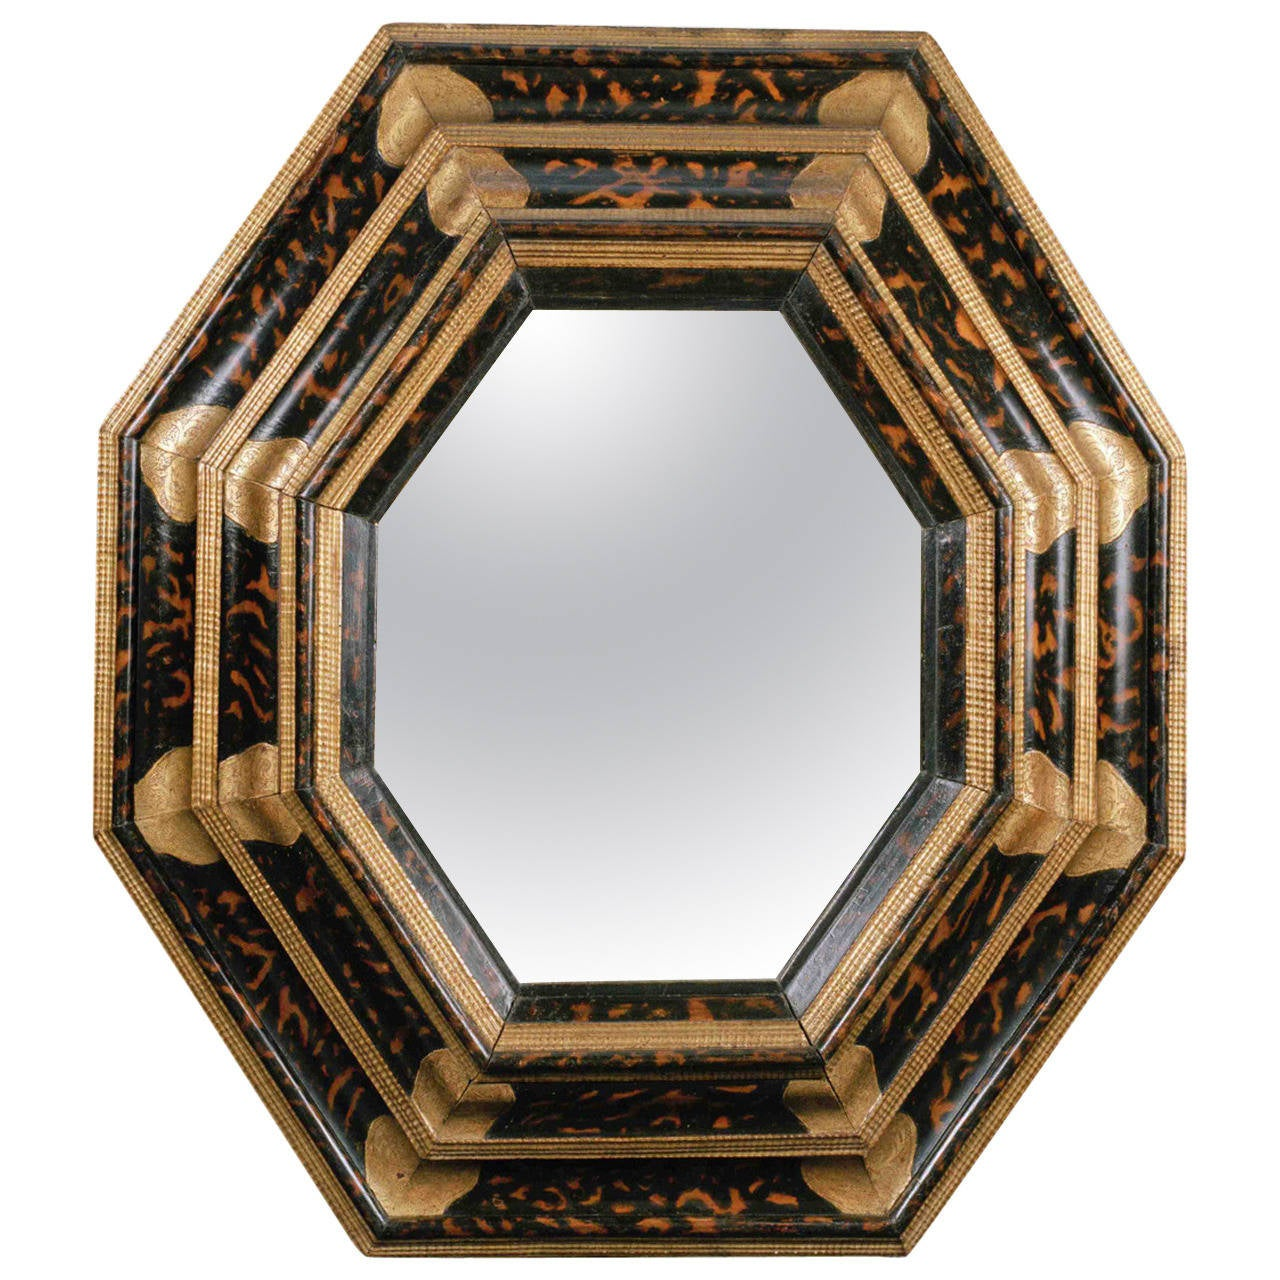 1345566 for 17th century mirrors